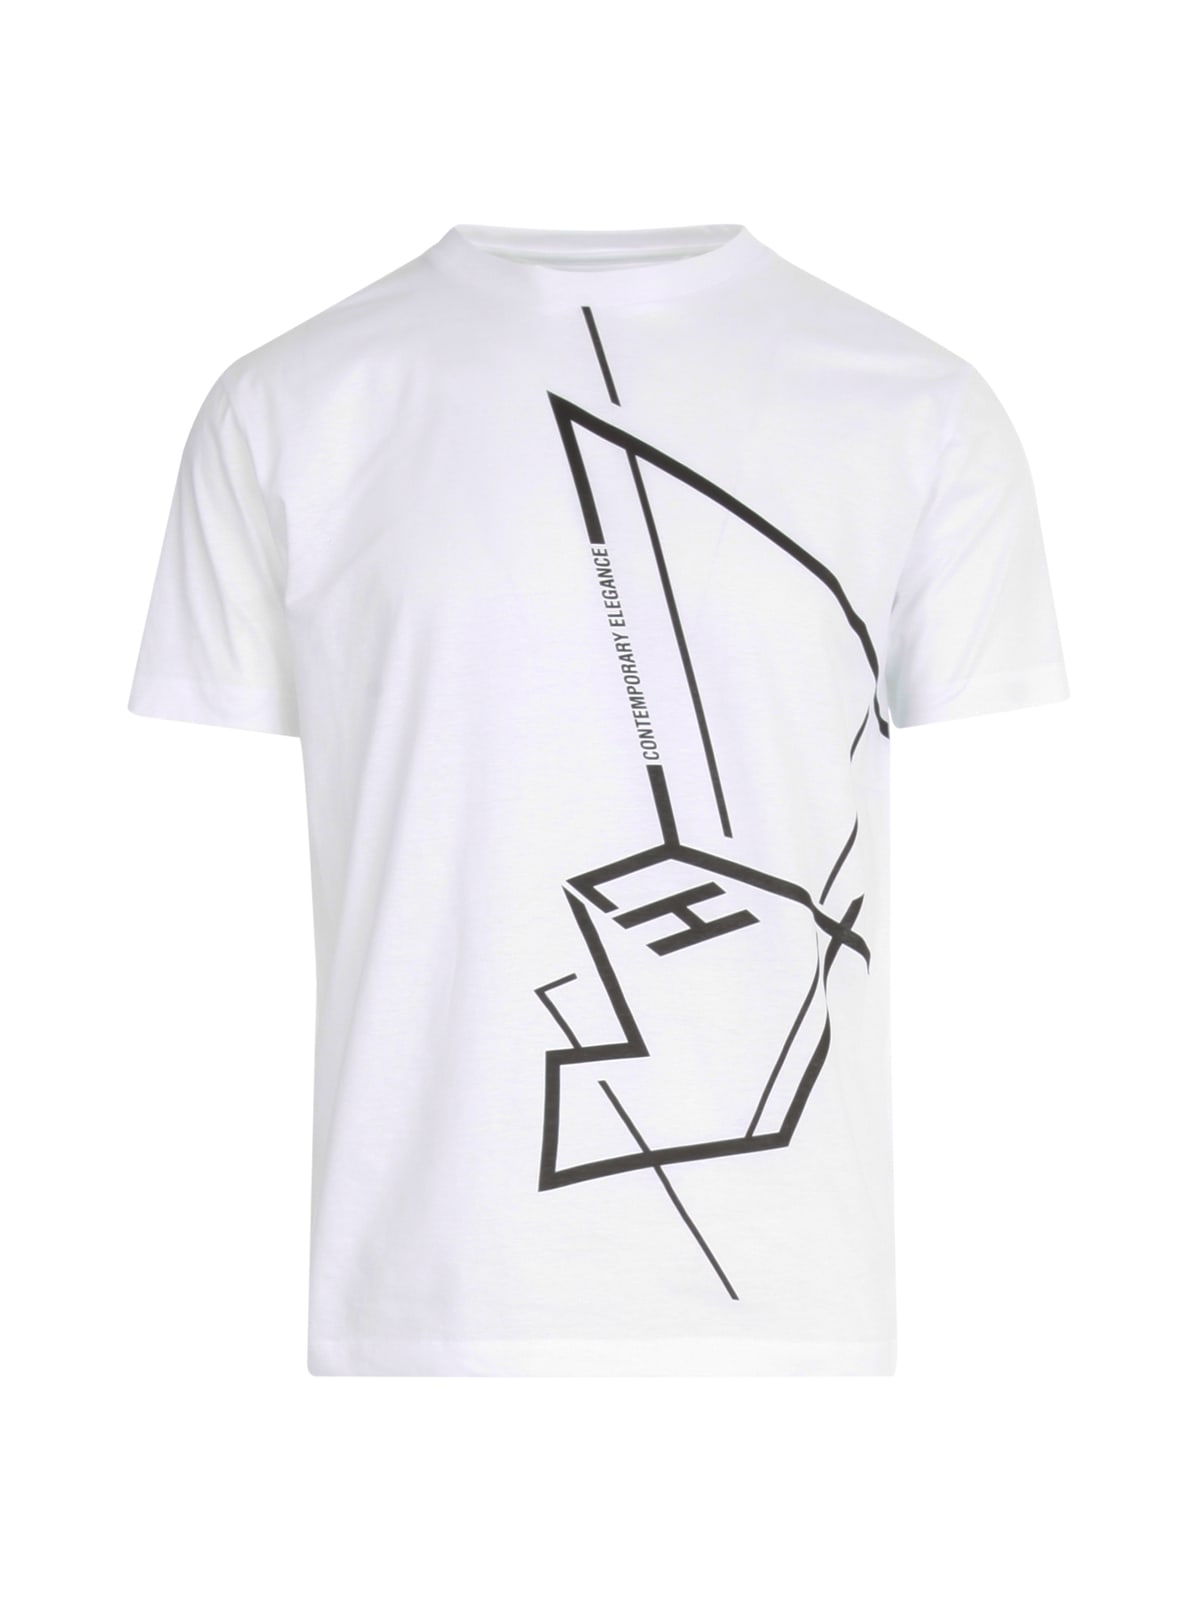 Les Hommes REGULAR T-SHIRT W/GRAPHIC PRINT ON FRONT